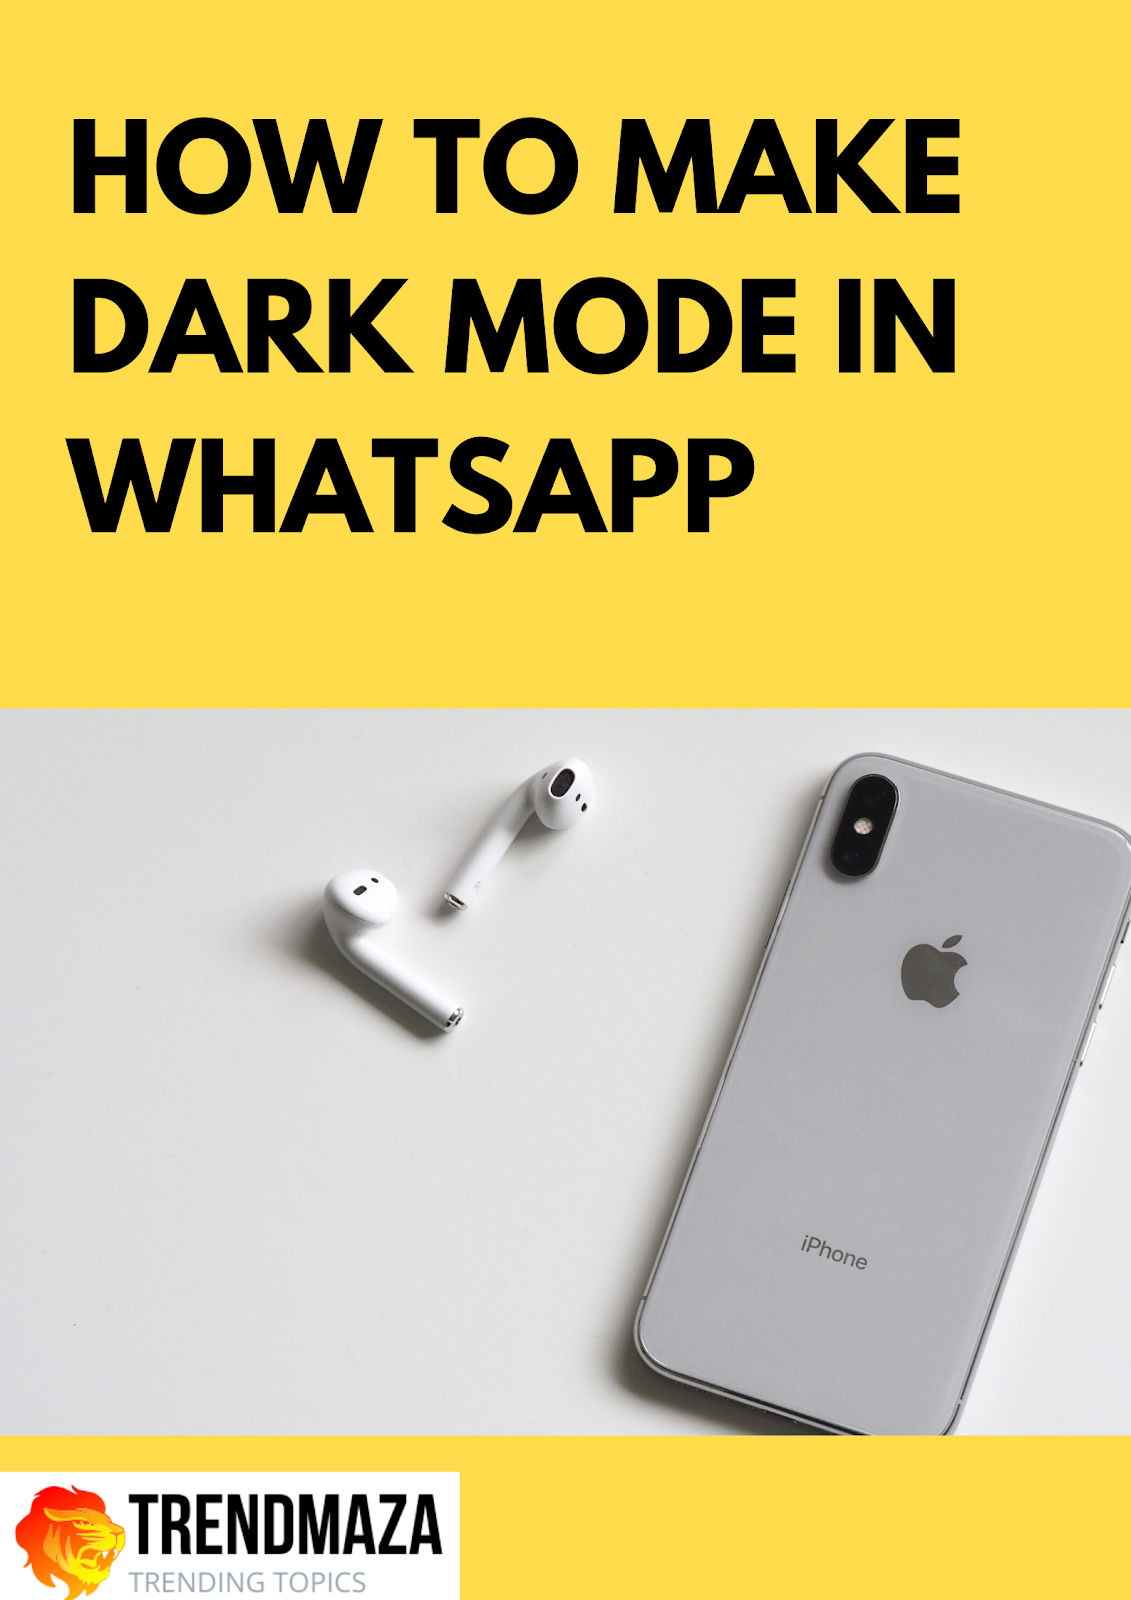 how to make dark mode in WhatsApp